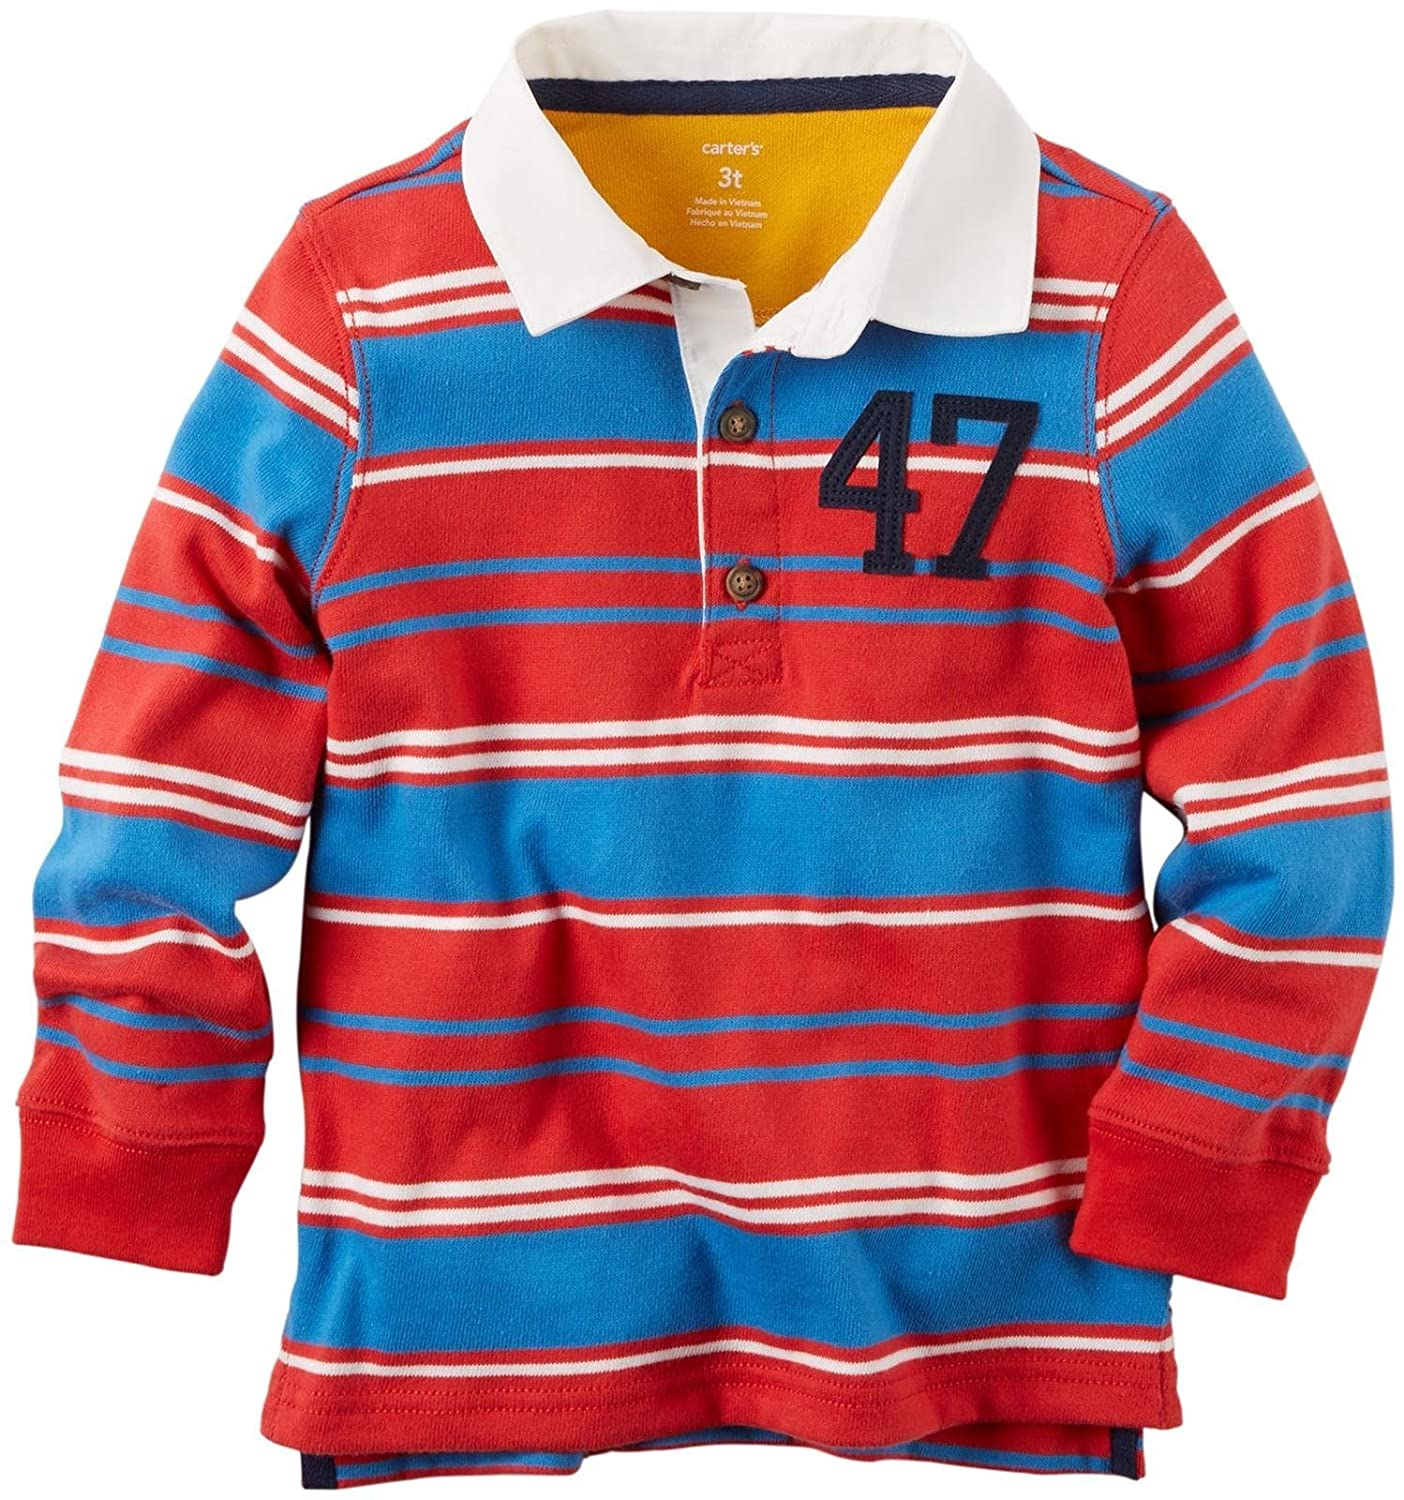 Carters Baby Boys Striped Rugby Shirt-Red